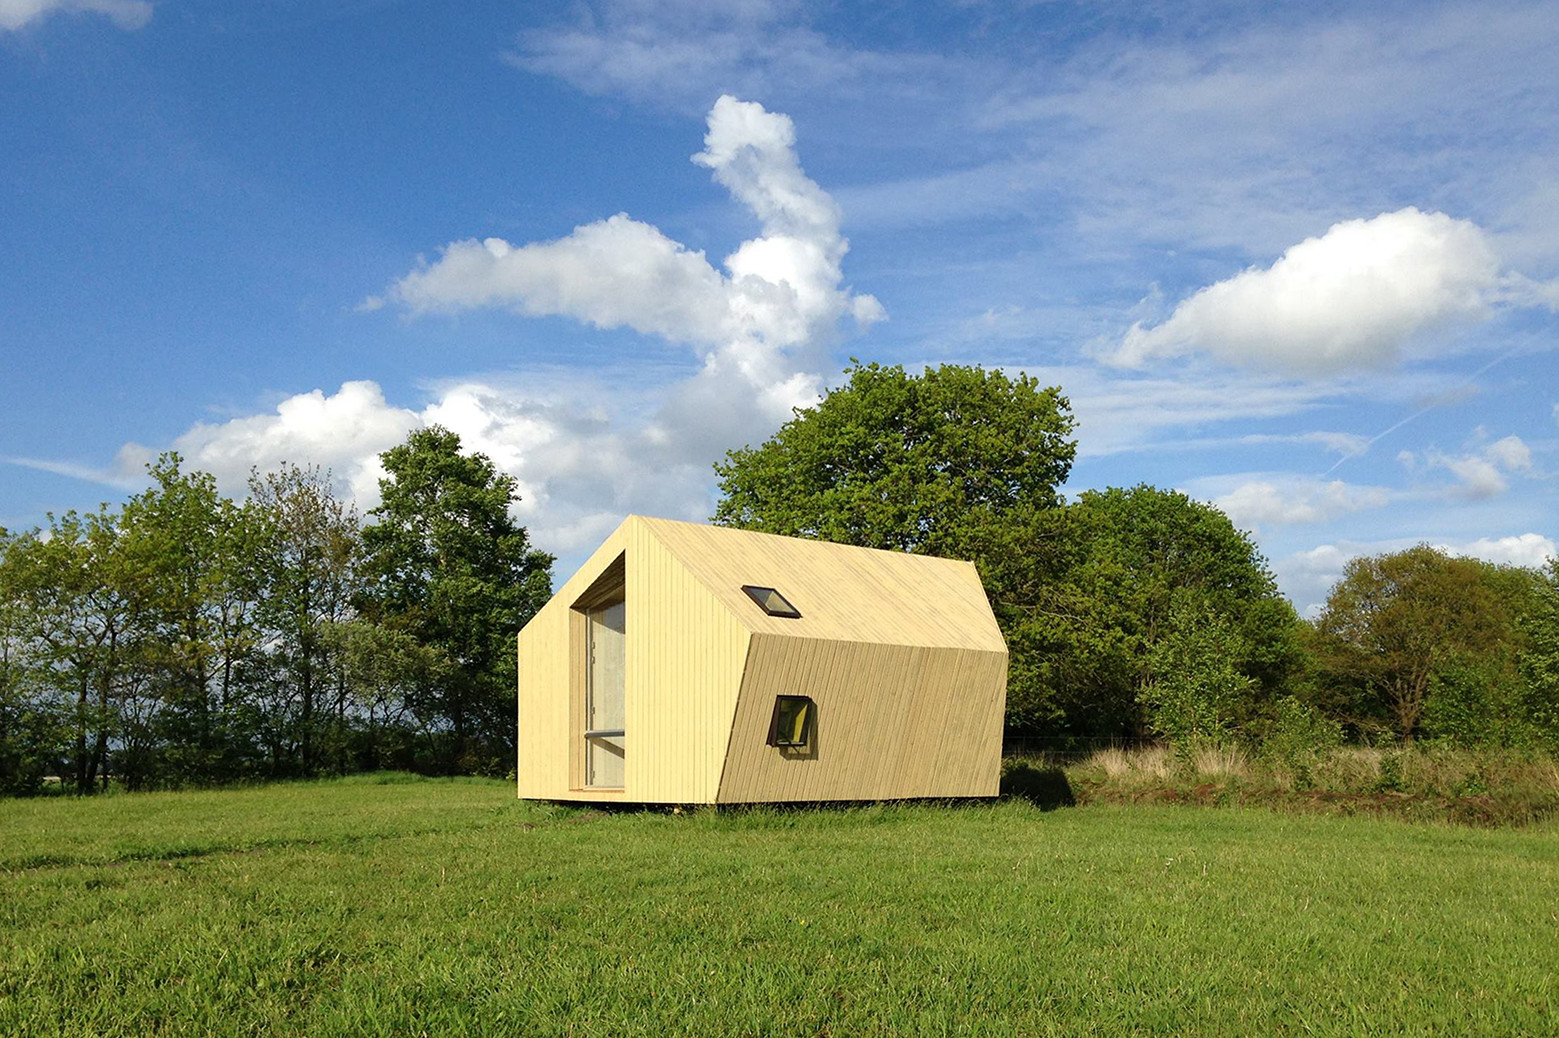 Trek-In Hicker's Cabins / MoodBuilders + Kristel Hermans Architectuur, Courtesy of Campsite